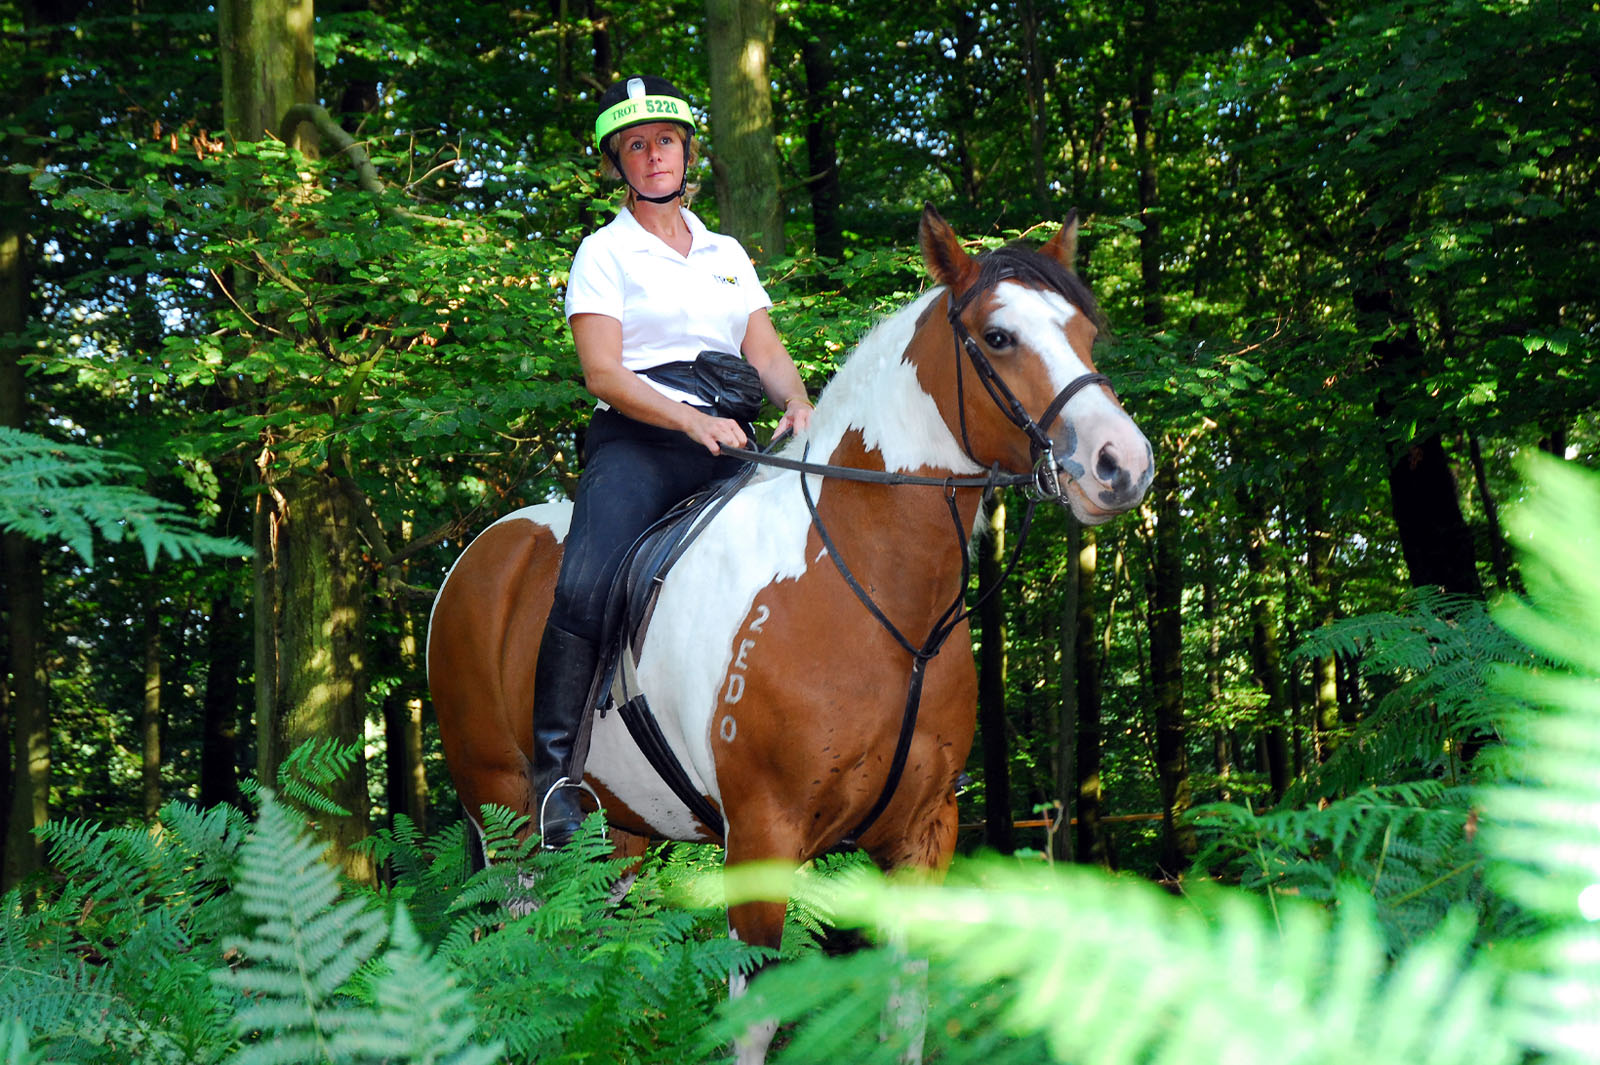 Woodland Horse Riding - photo by Mike Bartlett